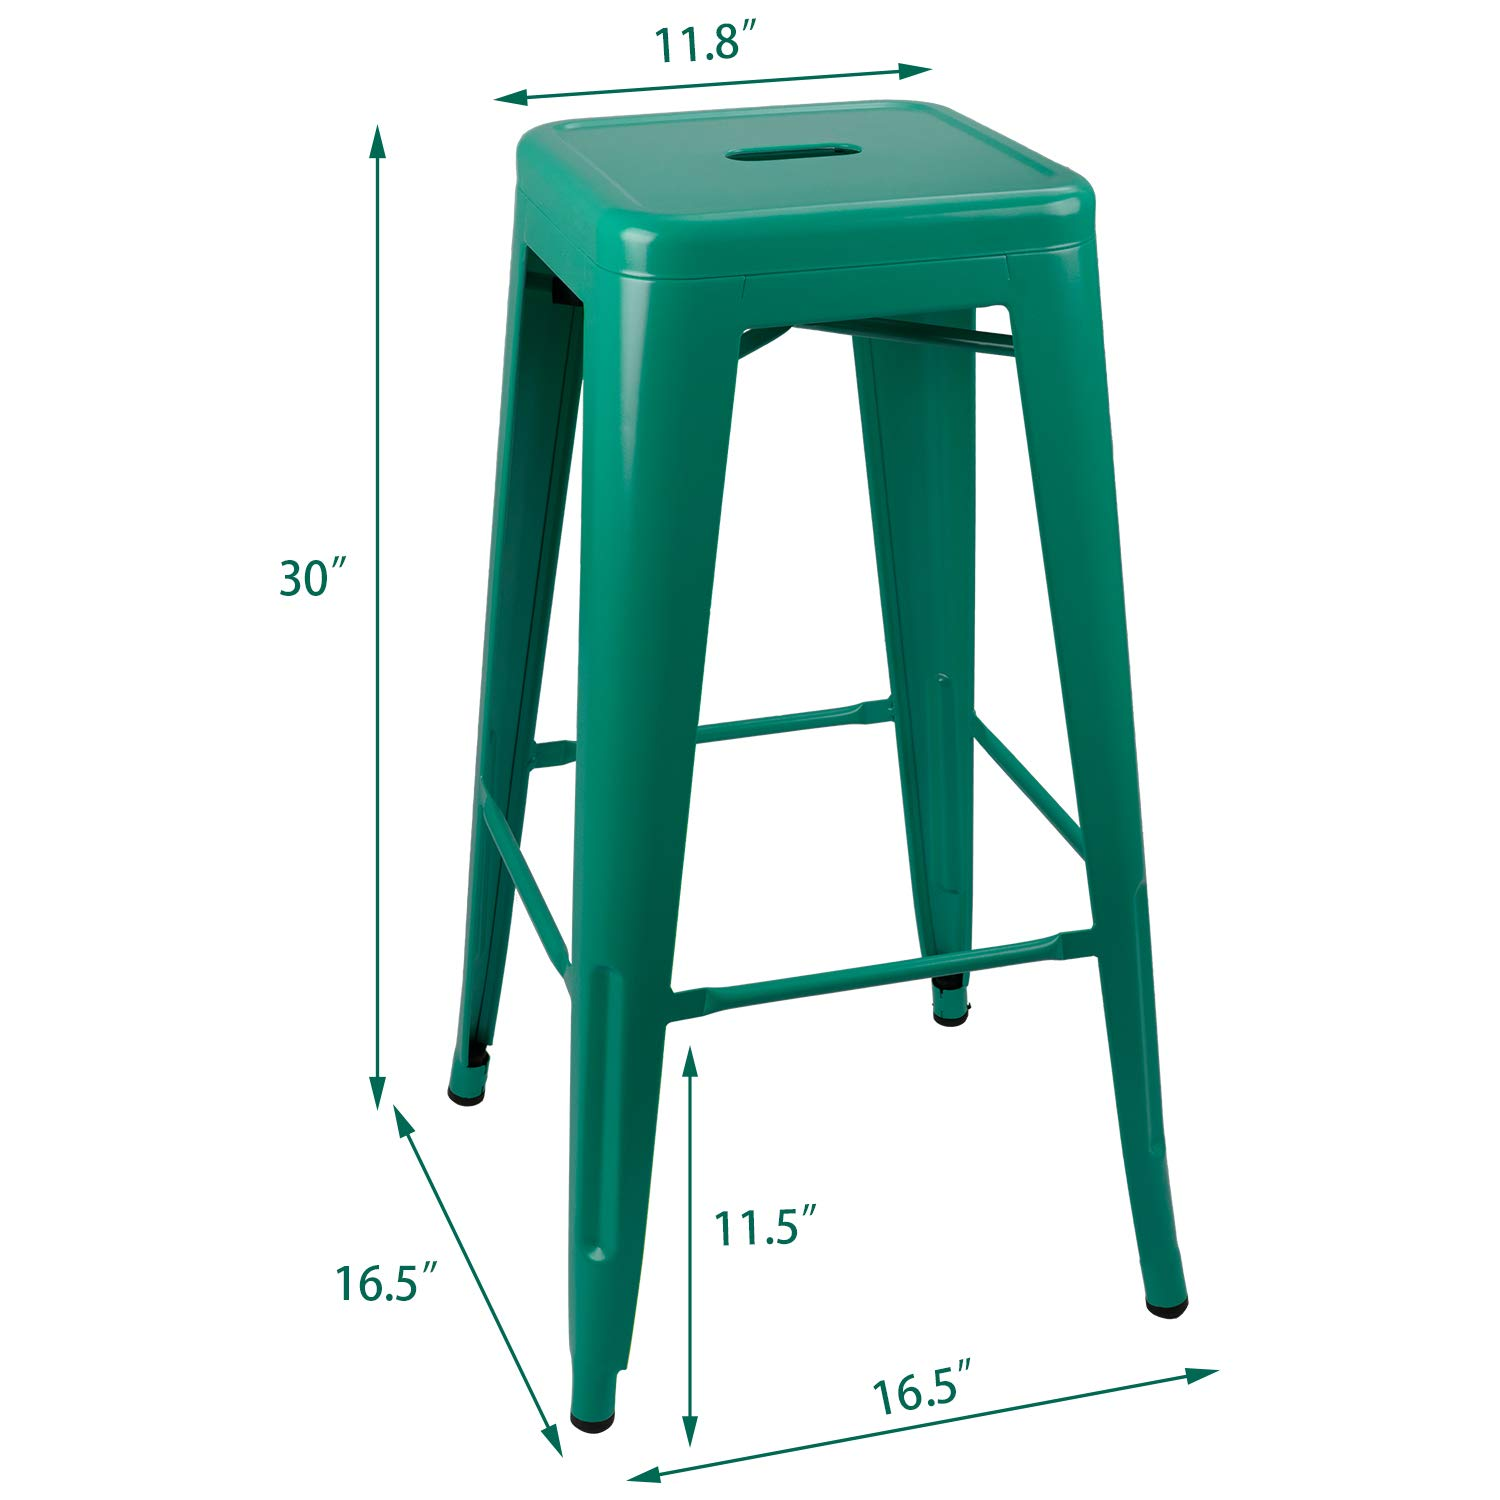 Green JUMMICO Metal Bar Stool Backless 30 Inches Stackable Counter Height Barstools Indoor Outdoor Modern Industrial Bar Stools Set of 4